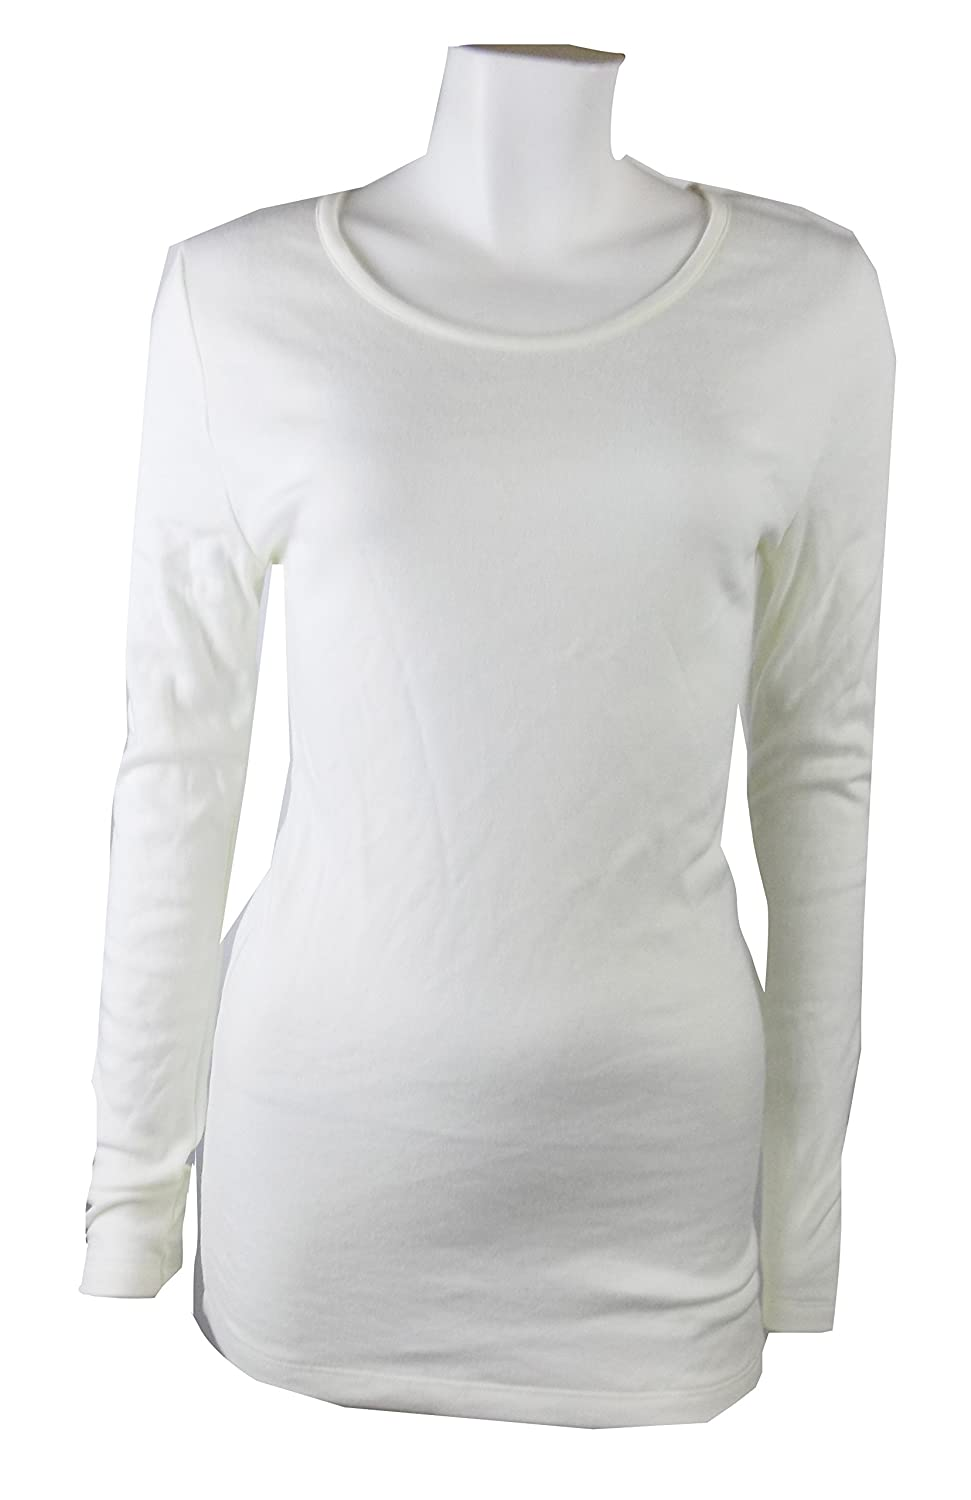 Ladies Cream Thermal Top Long Sleeve Crew Neck Top Layer Base 8 10 12 18